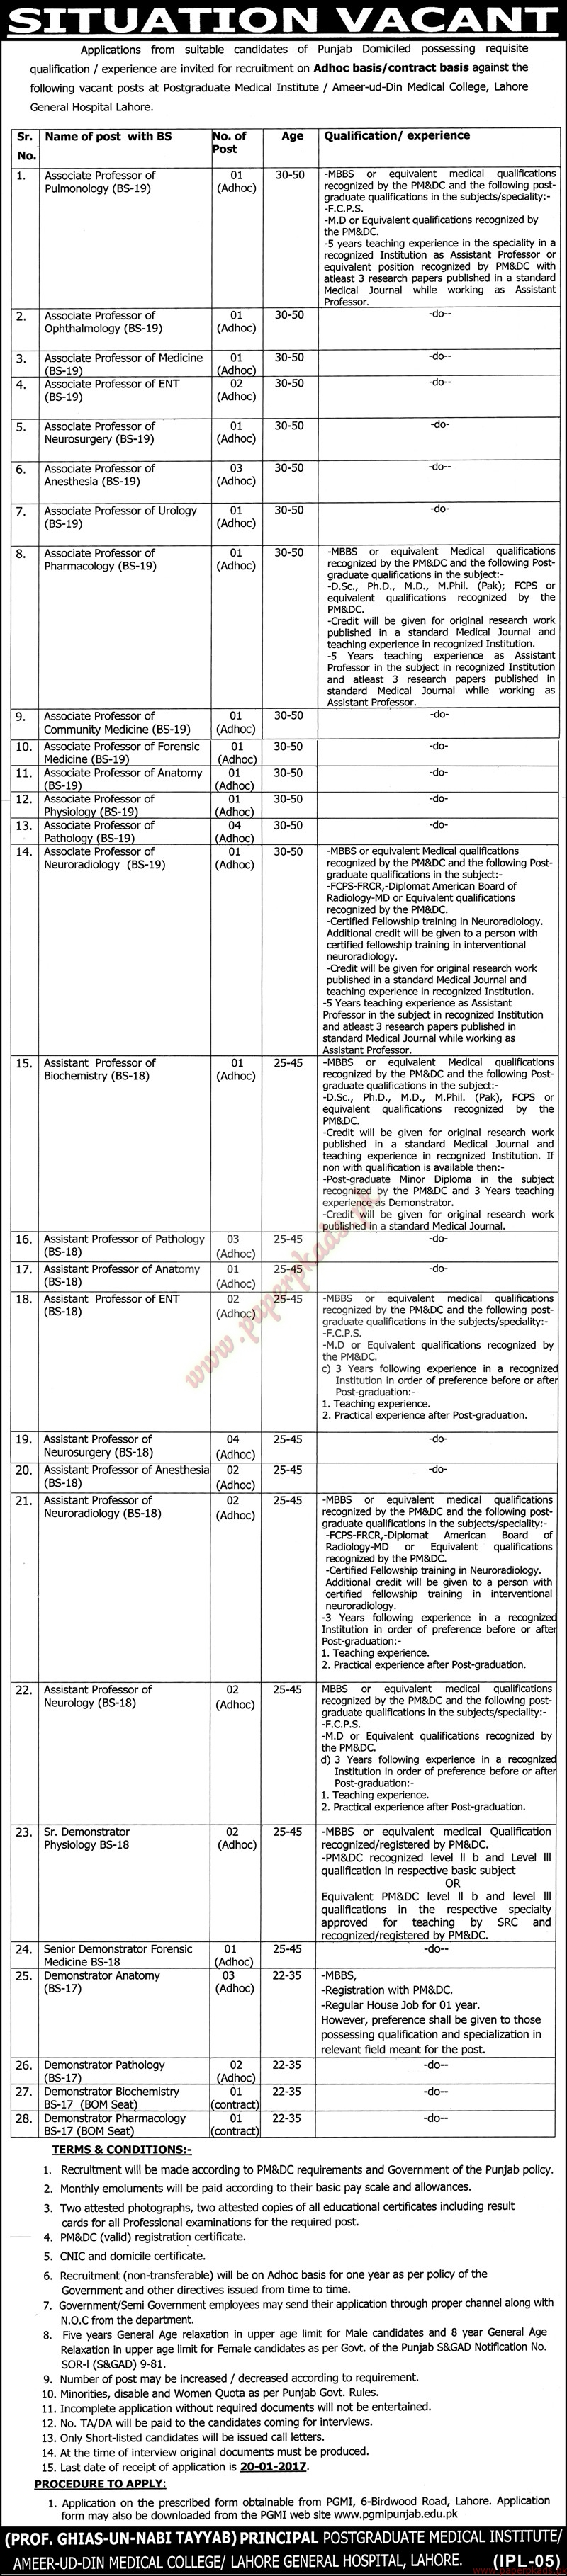 General Hospital Lahore Jobs - Nawaiwaqt Jobs ads 04 January 2017